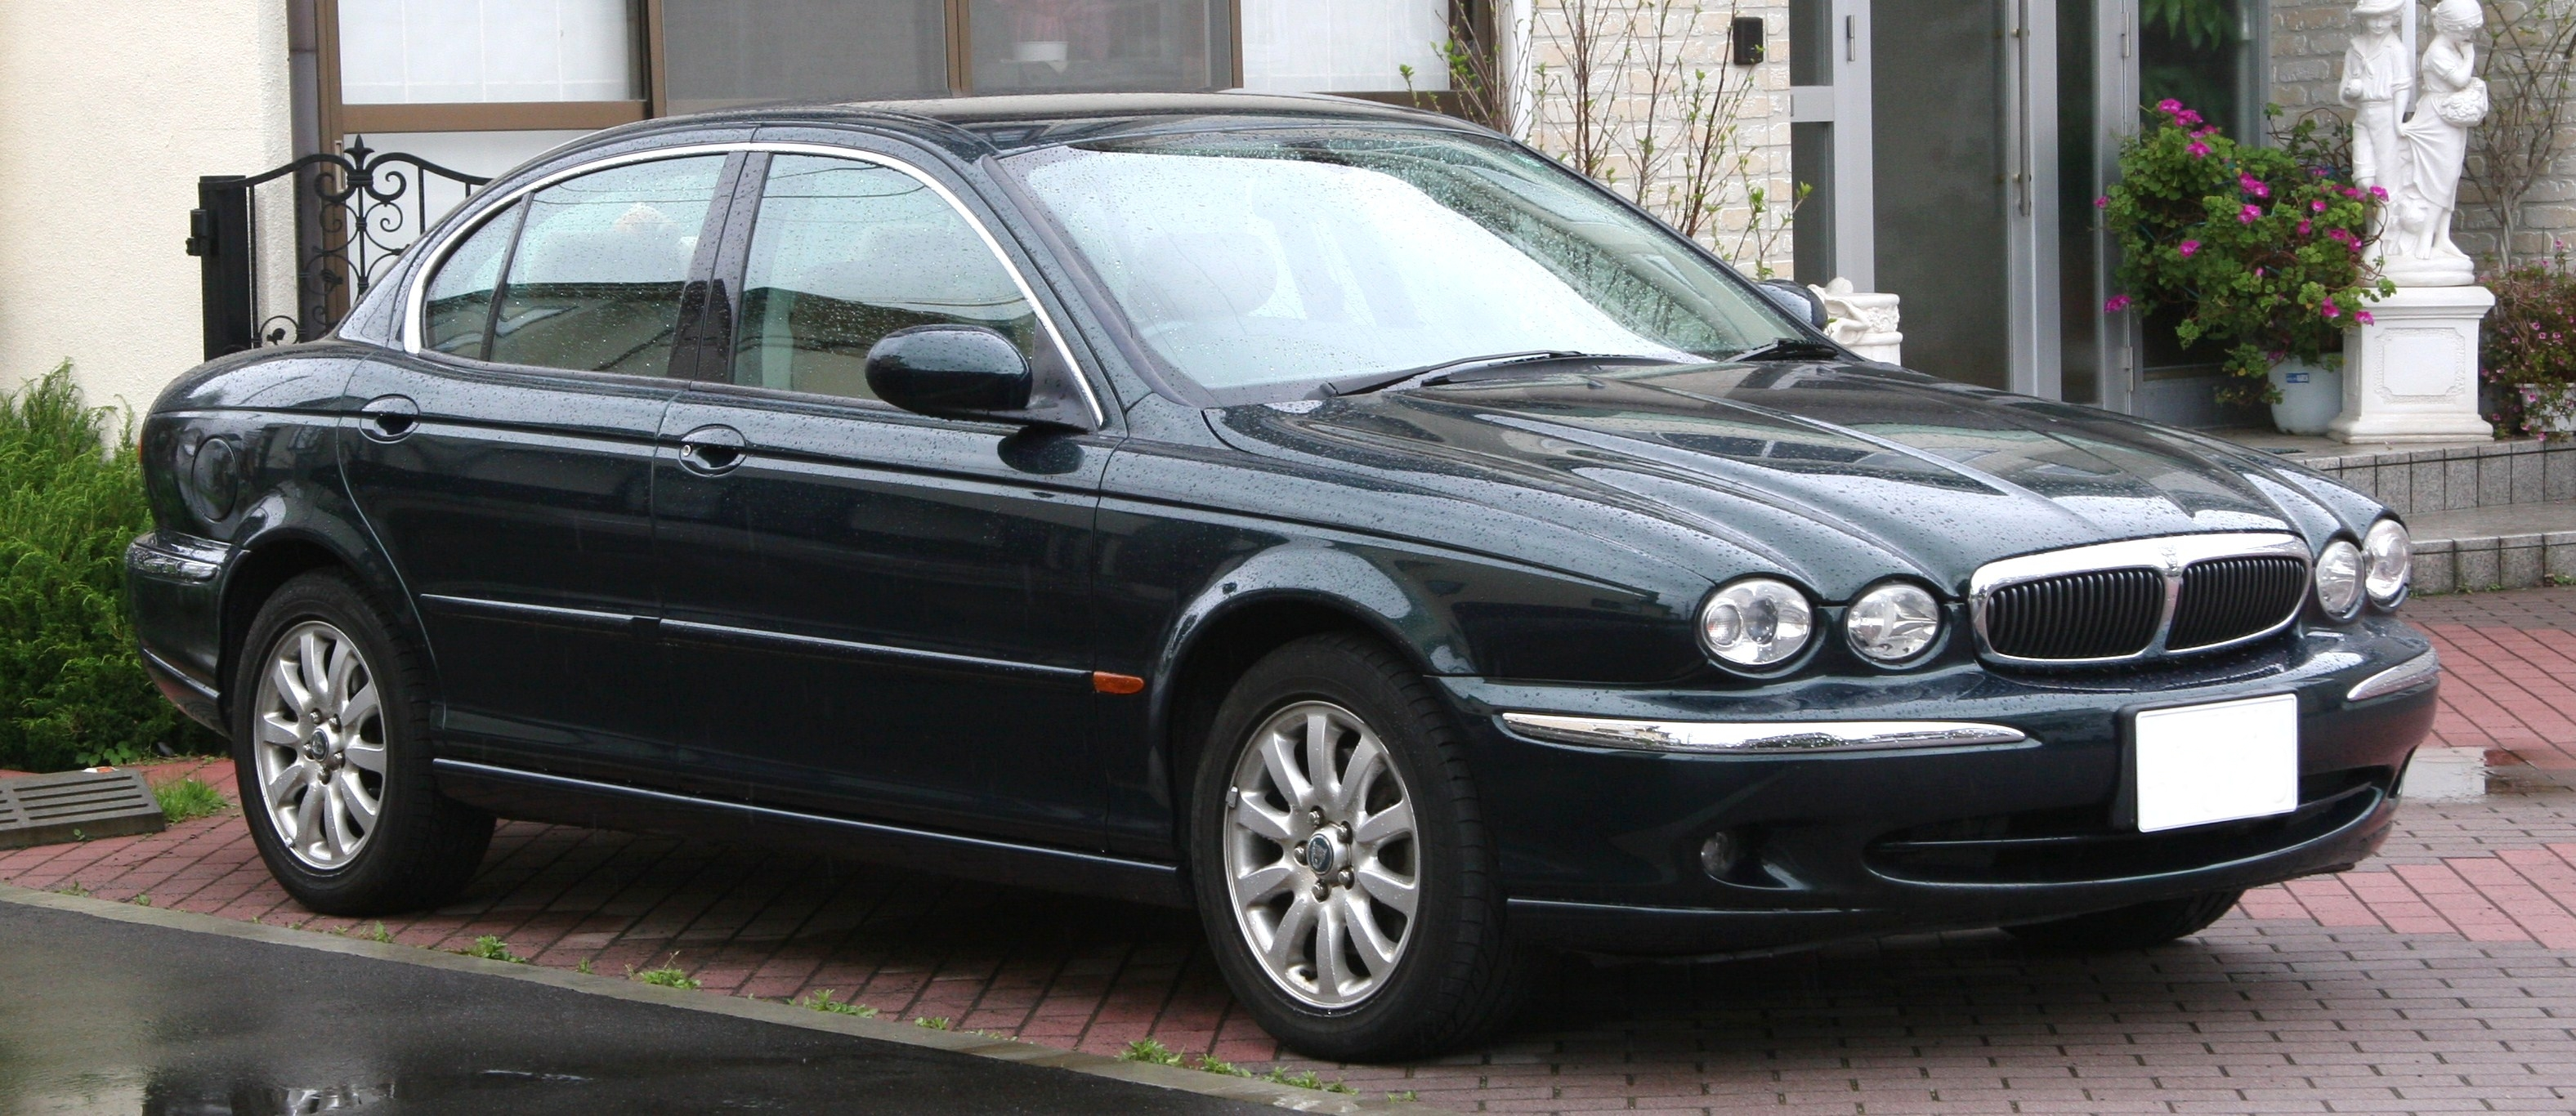 file jaguar x wikipedia. Black Bedroom Furniture Sets. Home Design Ideas